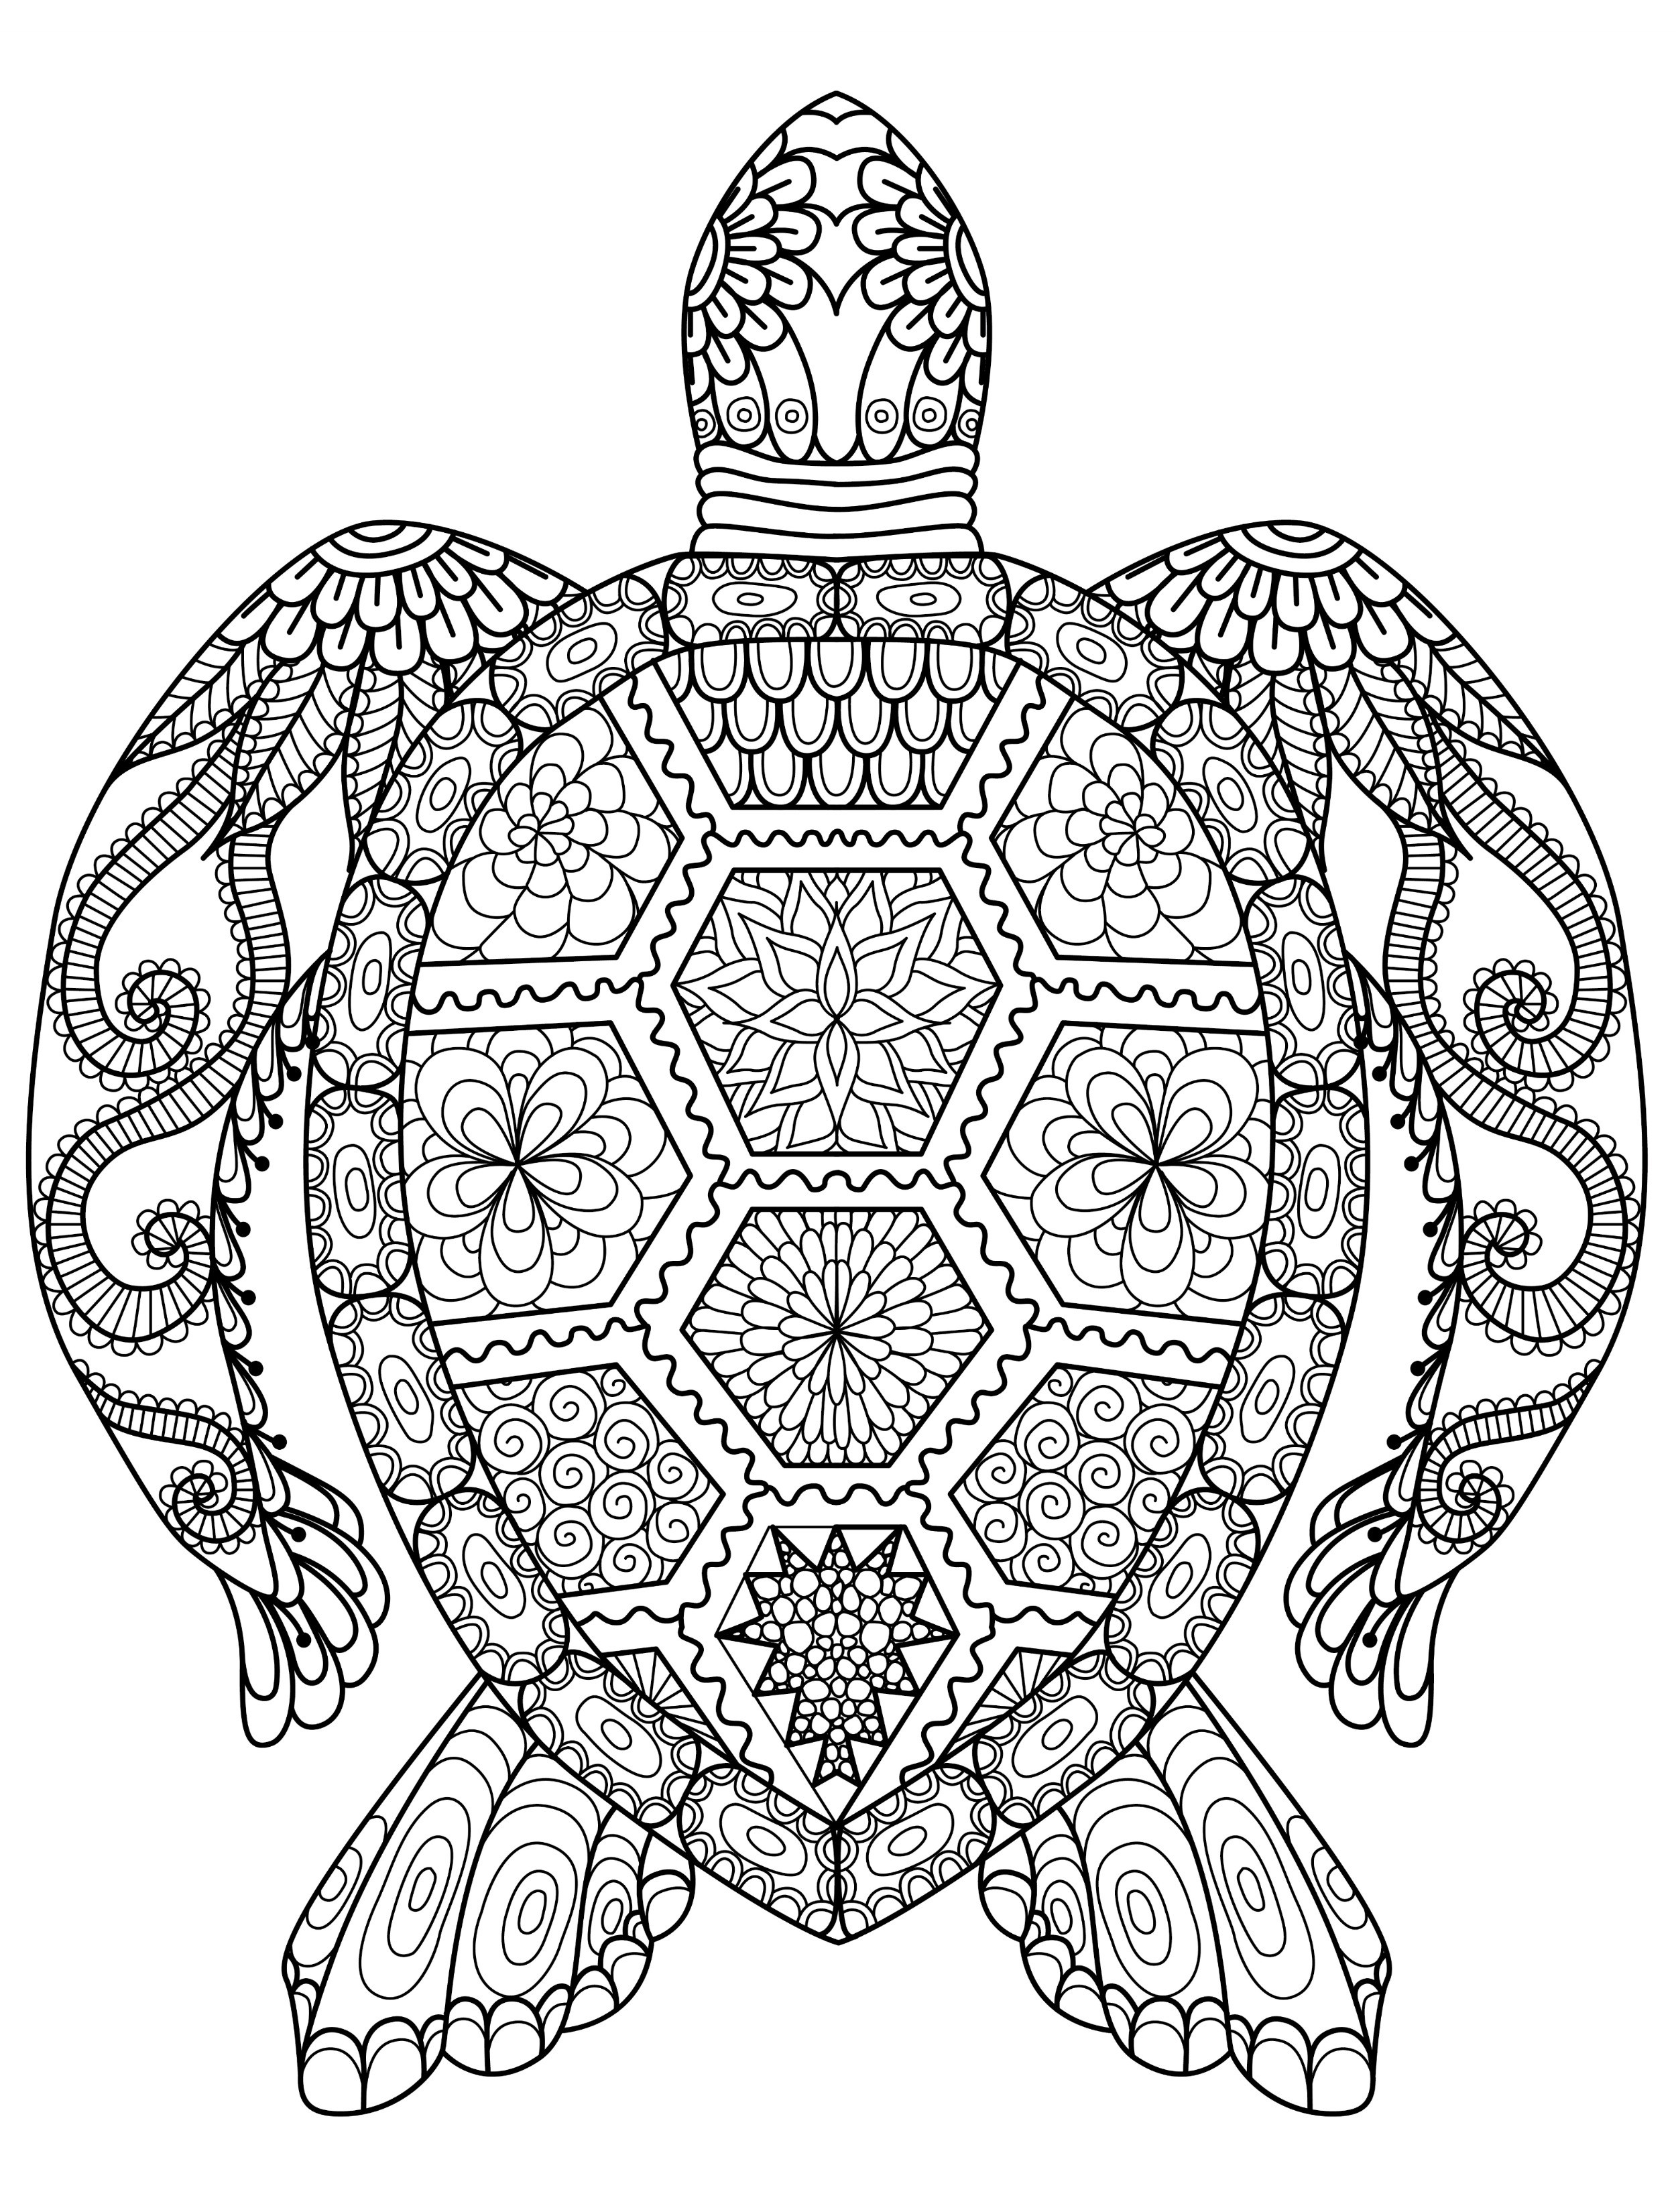 color in pictures free printable tangled coloring pages for kids cool2bkids in pictures color 1 1